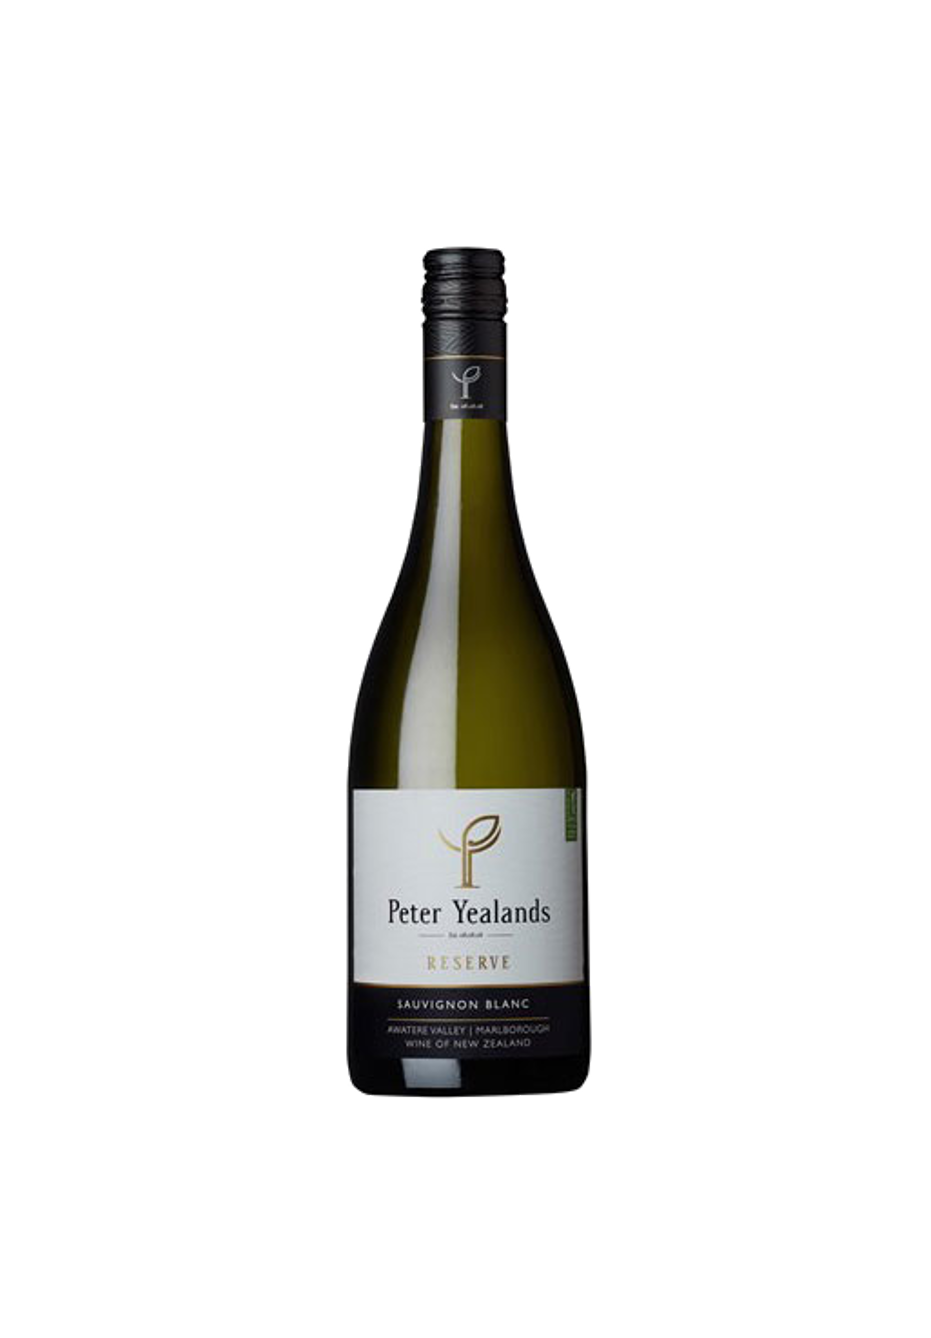 Peter Yealands 'Reserve' Marlborough Sauvignon Blanc 2018